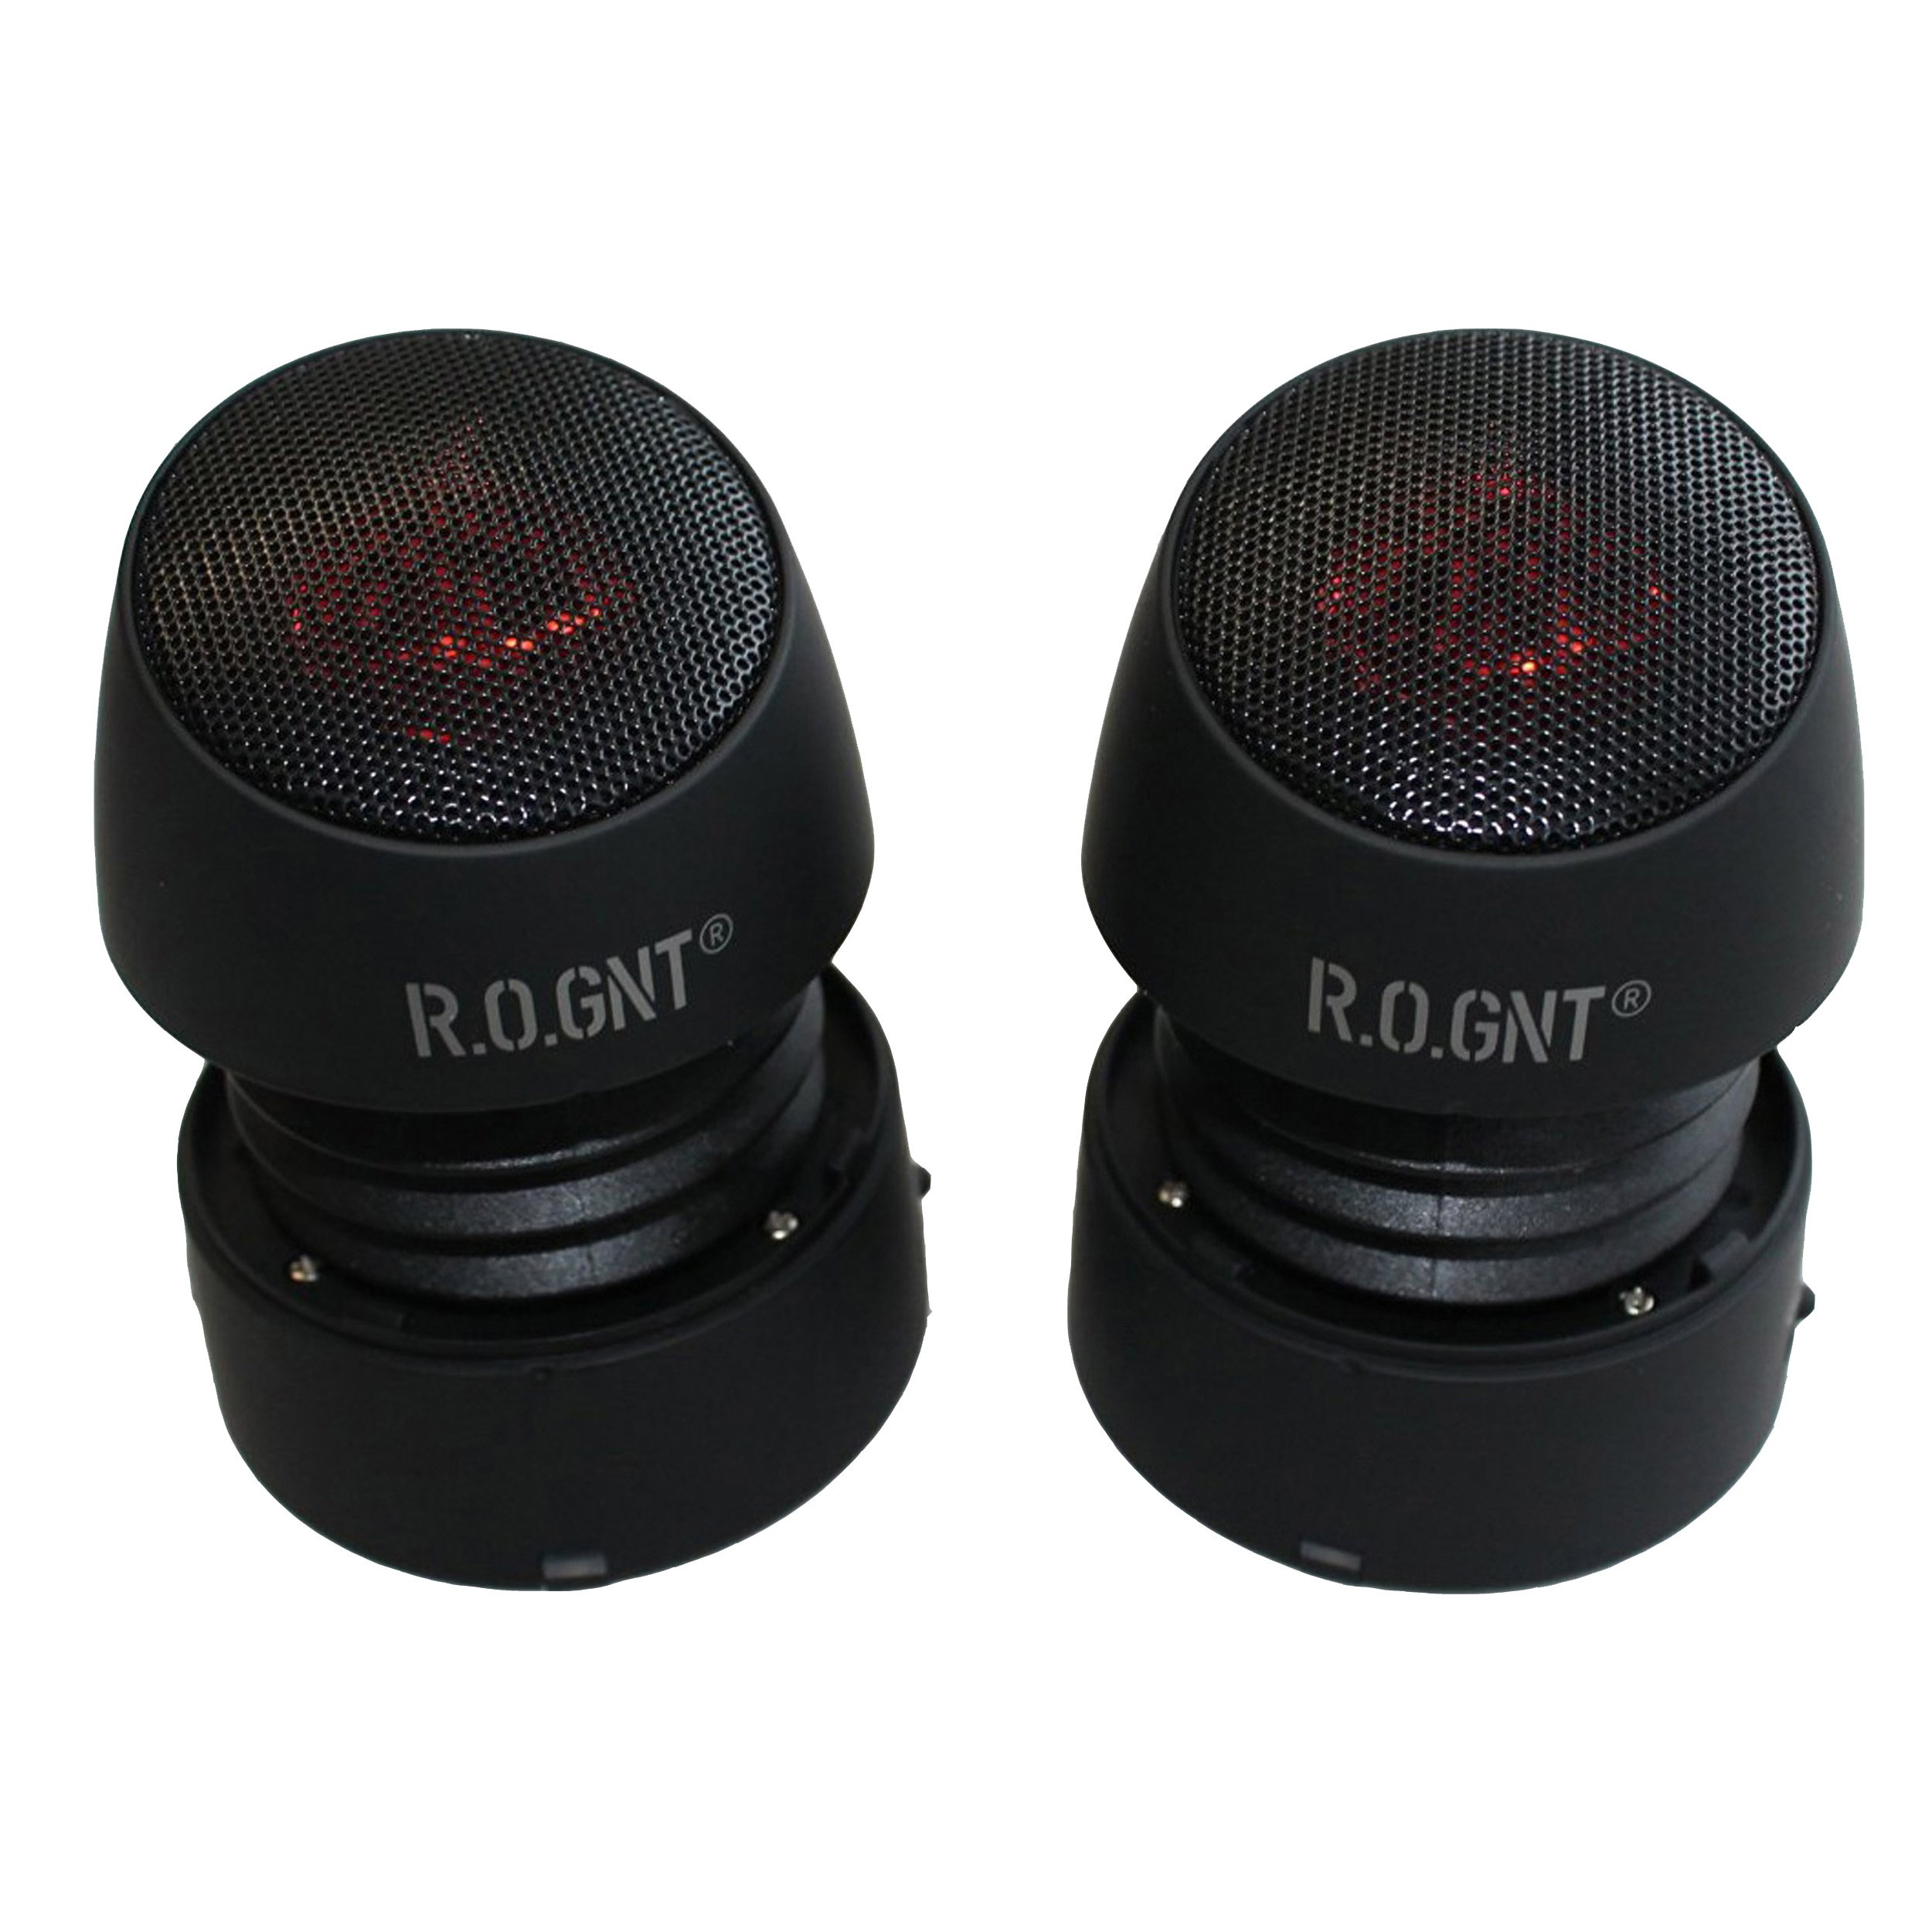 R.O.GNT Portable Wired MP3 Twin Capsule Speakers for Mobile Devices, Smartphone, iPhone and Tablet, Laptop, Notebook (Wired, Twin Capsules) (Black) by R.O.GNT (Image #2)